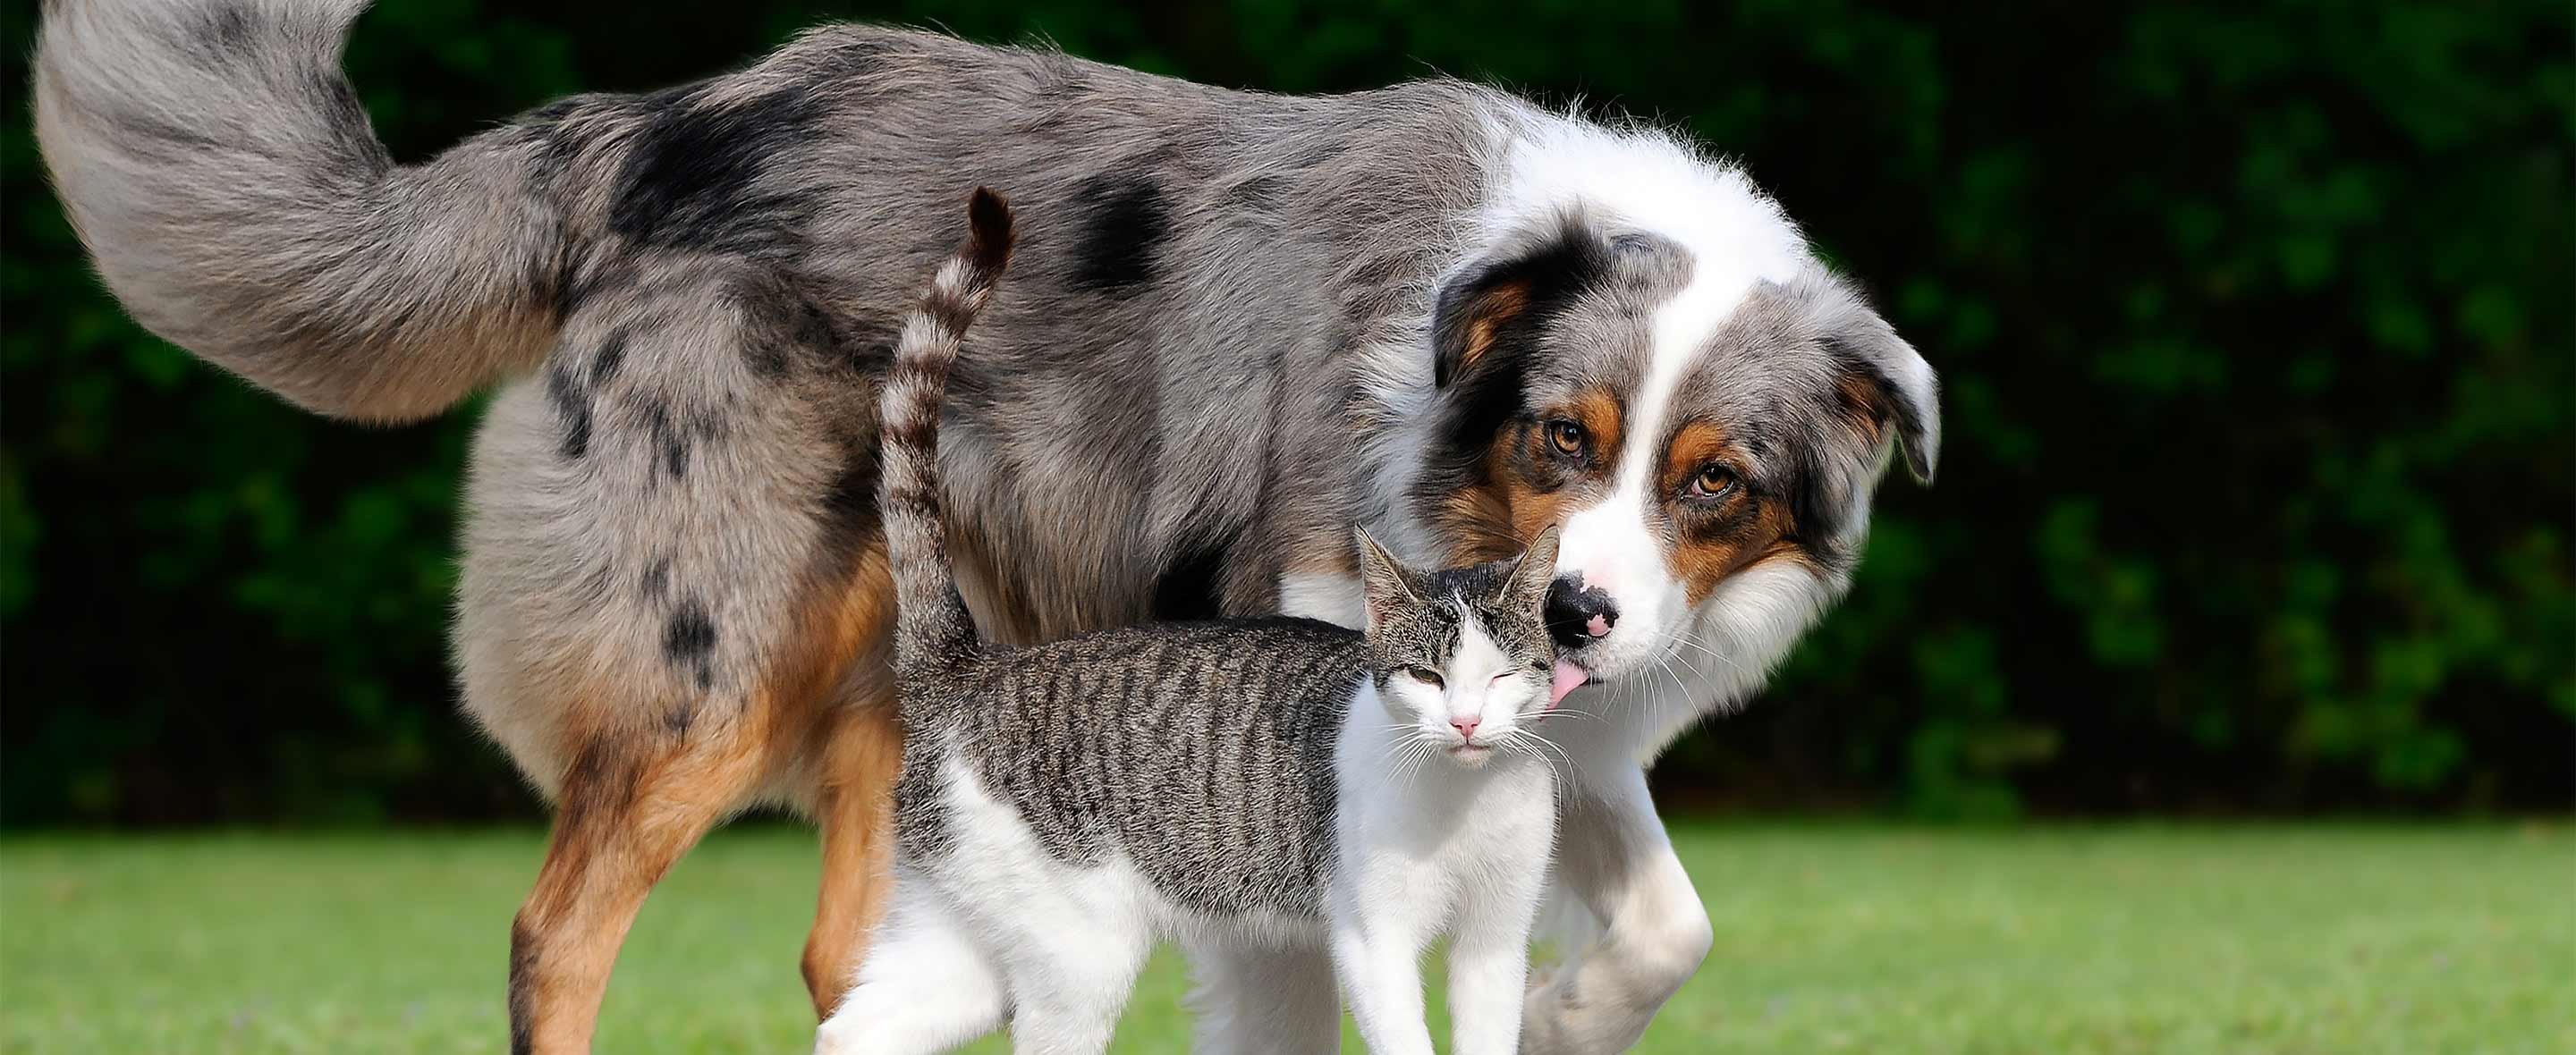 Dog and cat outdoors